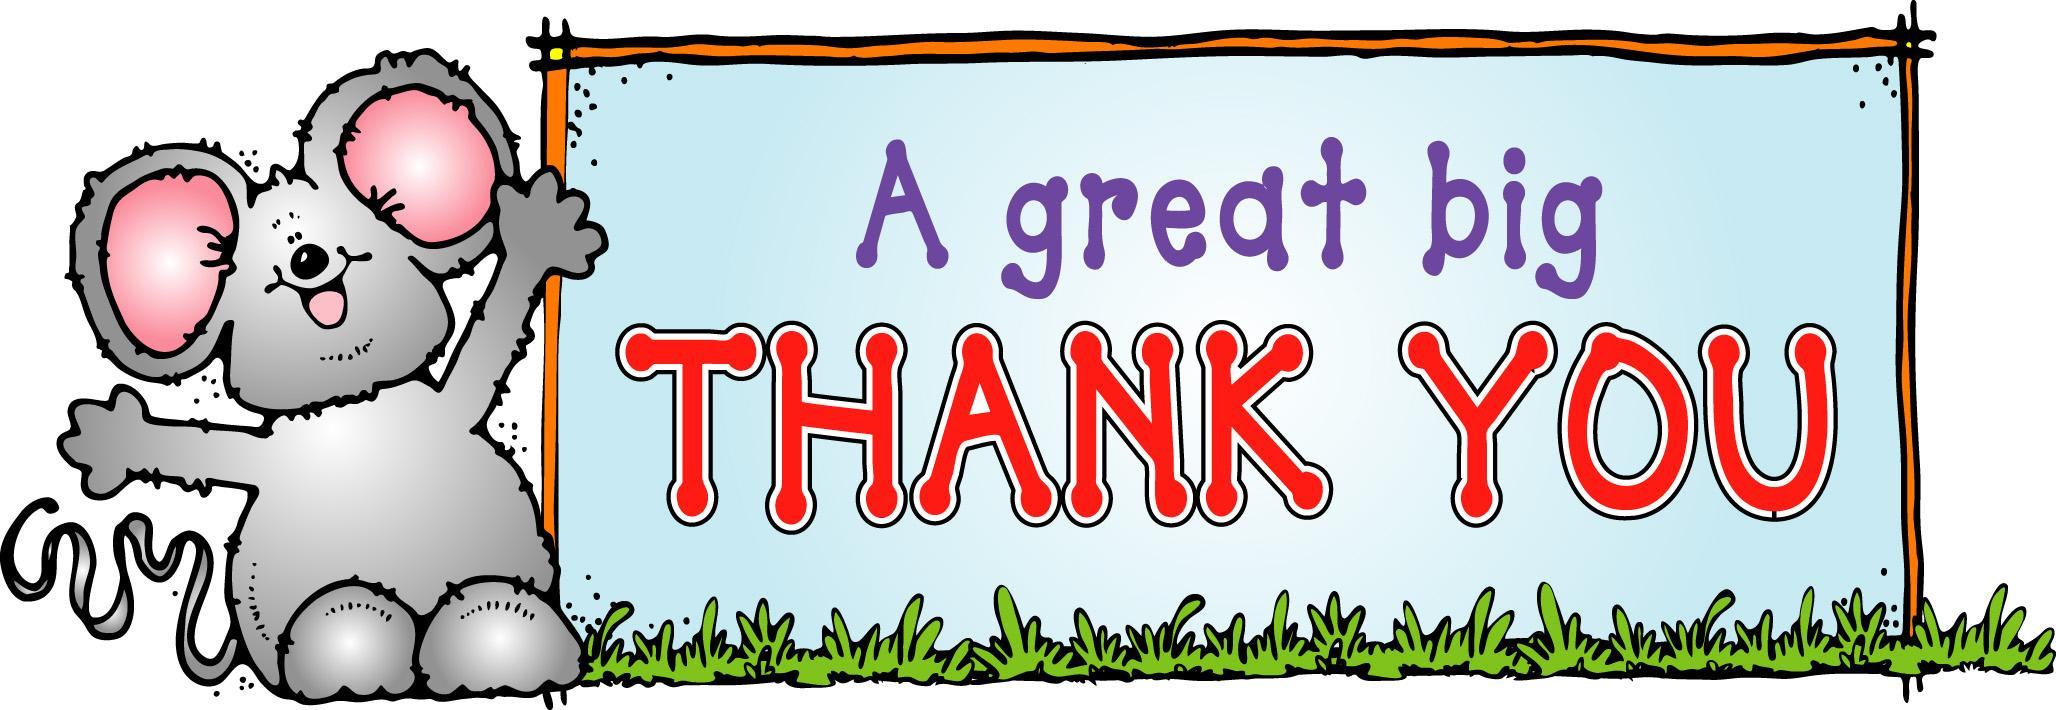 thank you clipart at getdrawings com free for personal use thank rh getdrawings com thank you clip art free images thank you clip art images